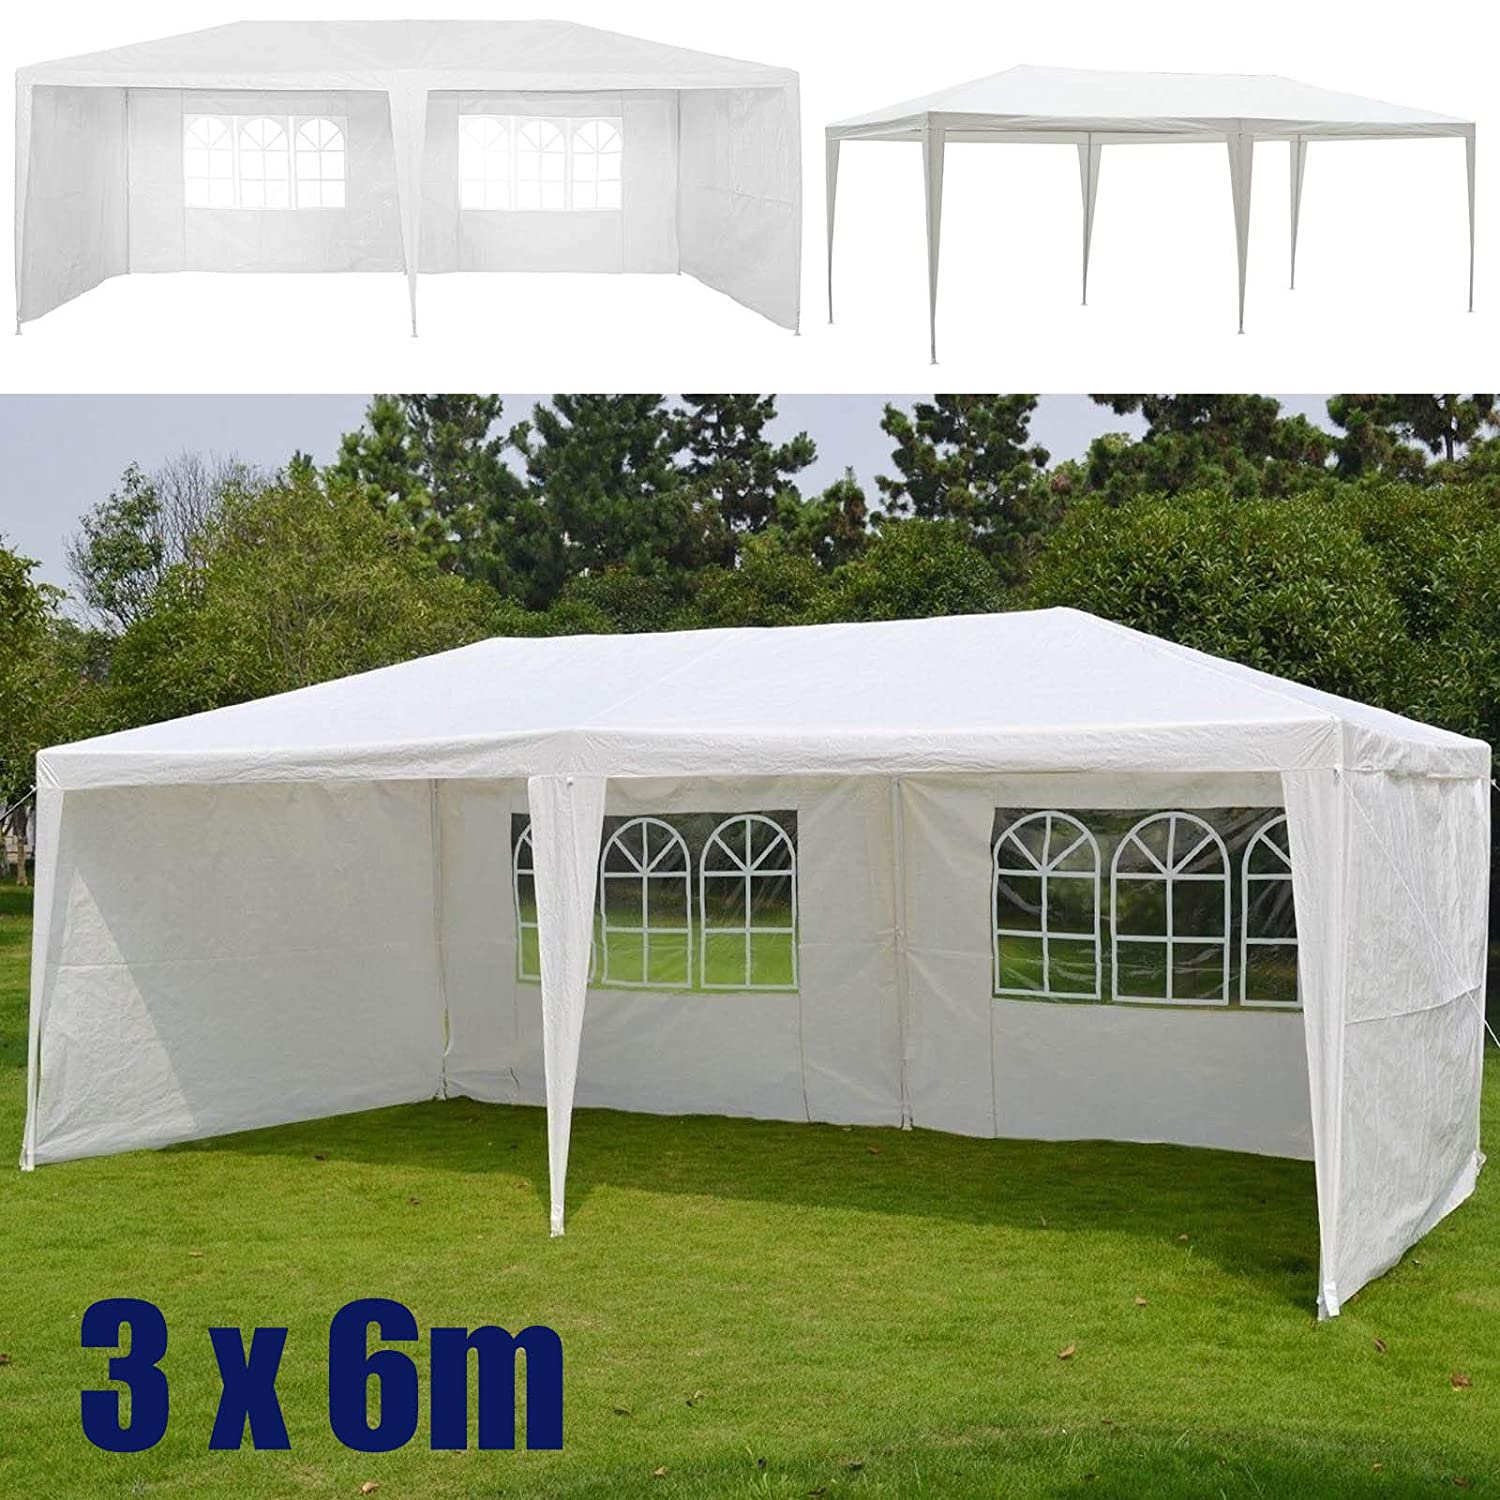 with Upgrade Metal Frame and 4 Sidewalls 120g waterproof PE Cover Easy Install Fit for Hard or Soft Ground Outdoor Party Gazebo Tent 3x3M Blue Canopy